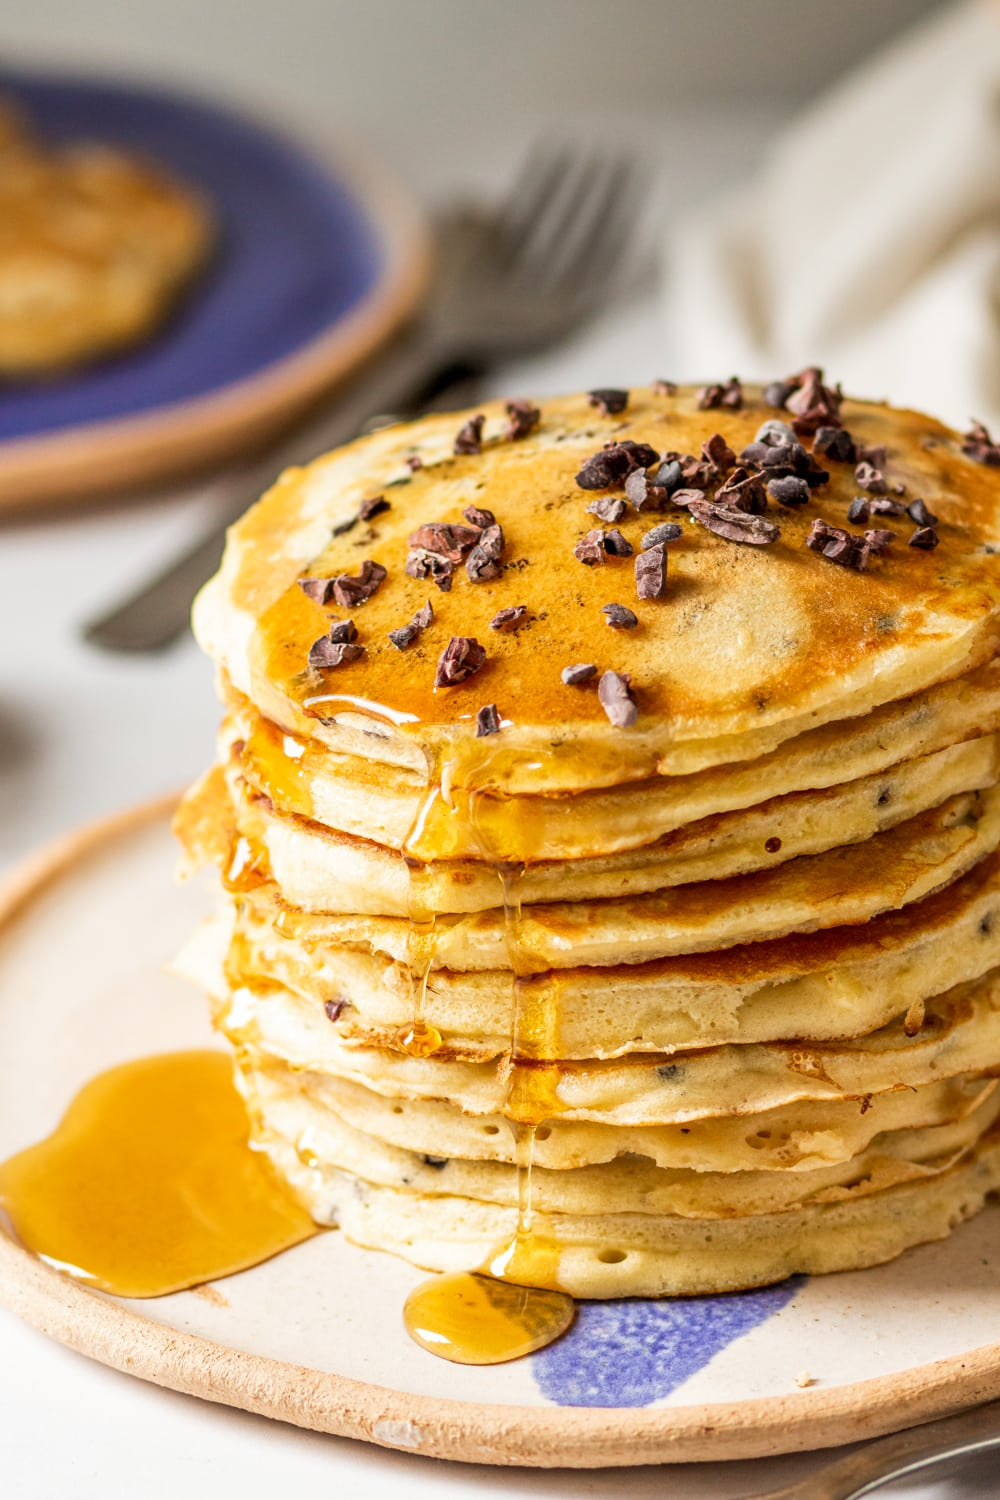 A stack of nine chocolate chip pancakes on a white plate. Syrup is dripping down the side of the pancakes with a small pool of syrup on the plate. Chocolate chips are on scattered on the surface of the top pancake.